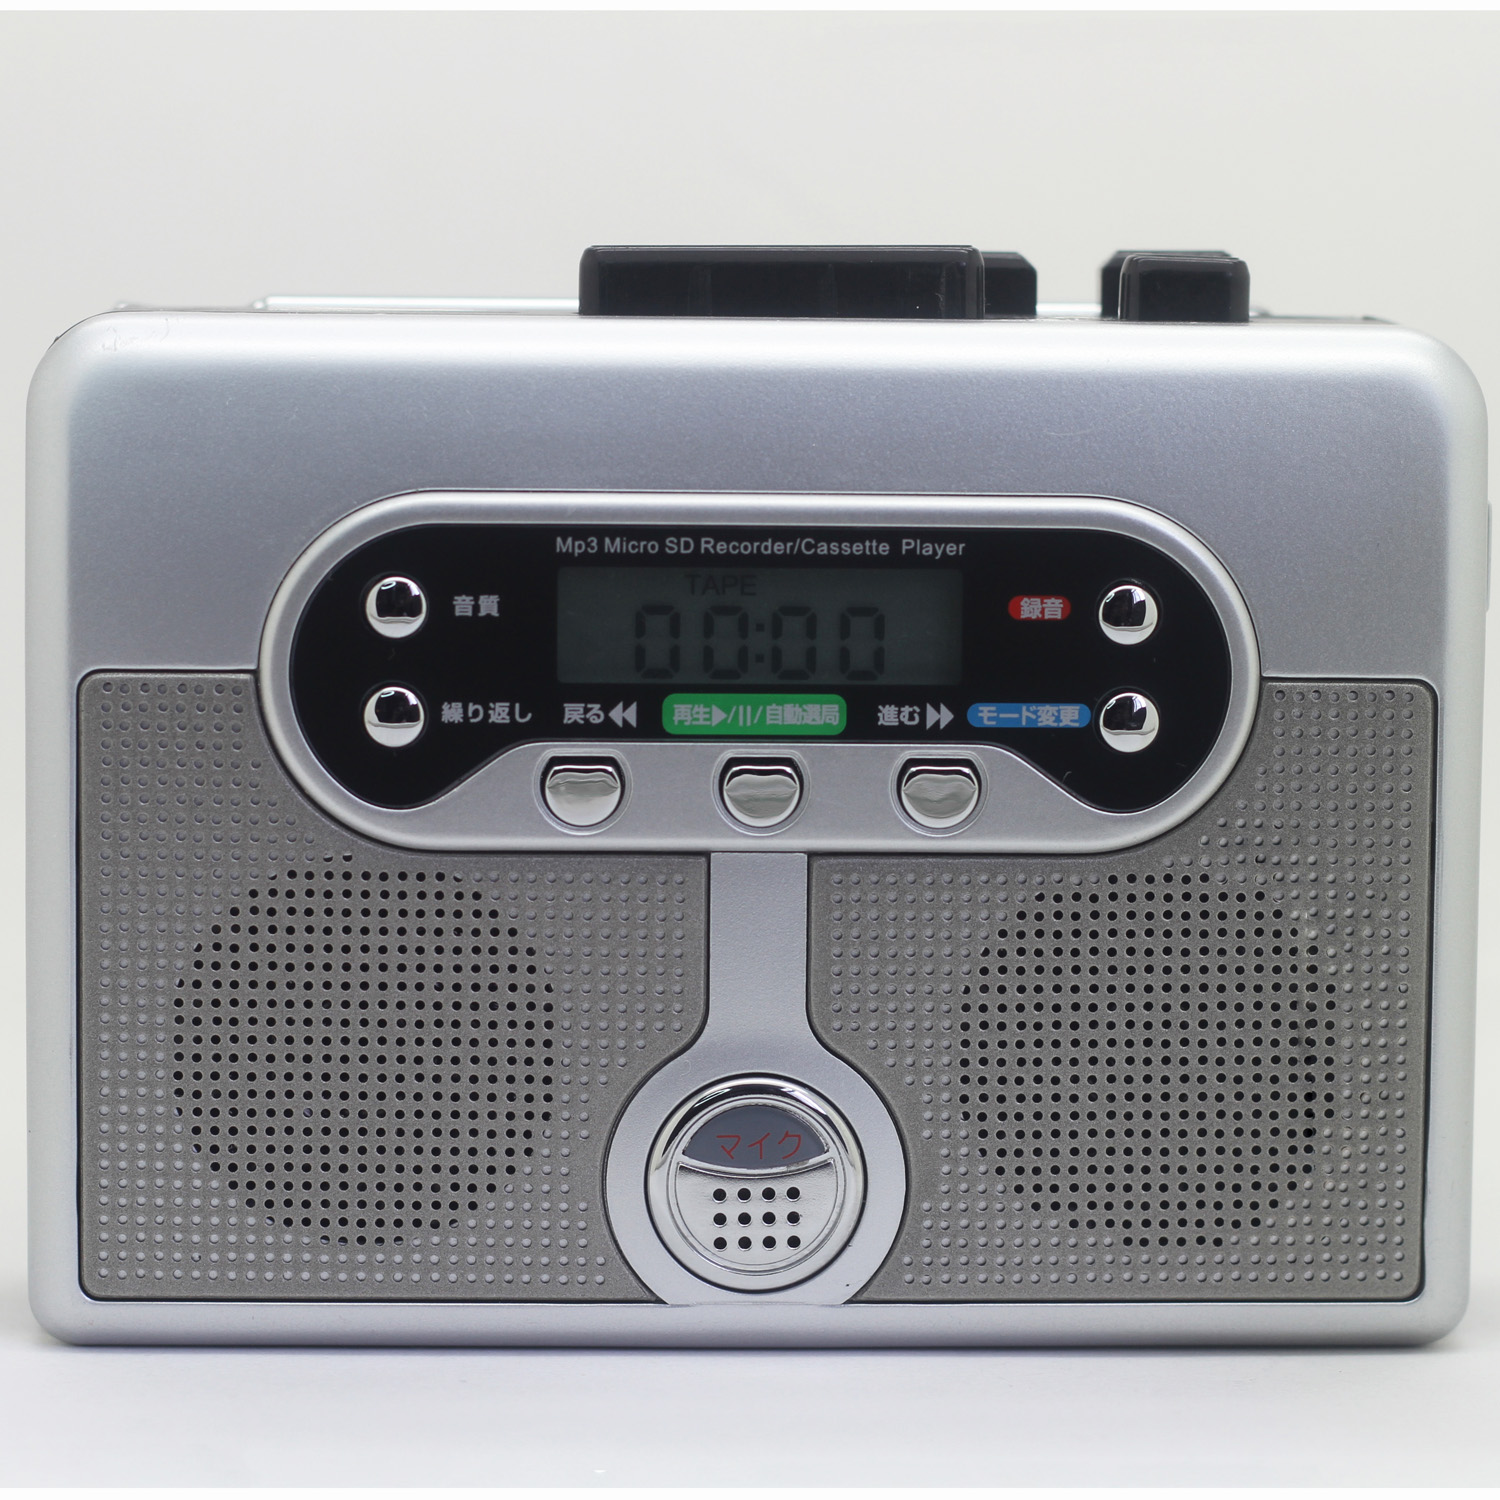 ezcap239 Cassette Player with AM/FM Radio Microphone Recorder Function Support Display Time and Clock Alarm